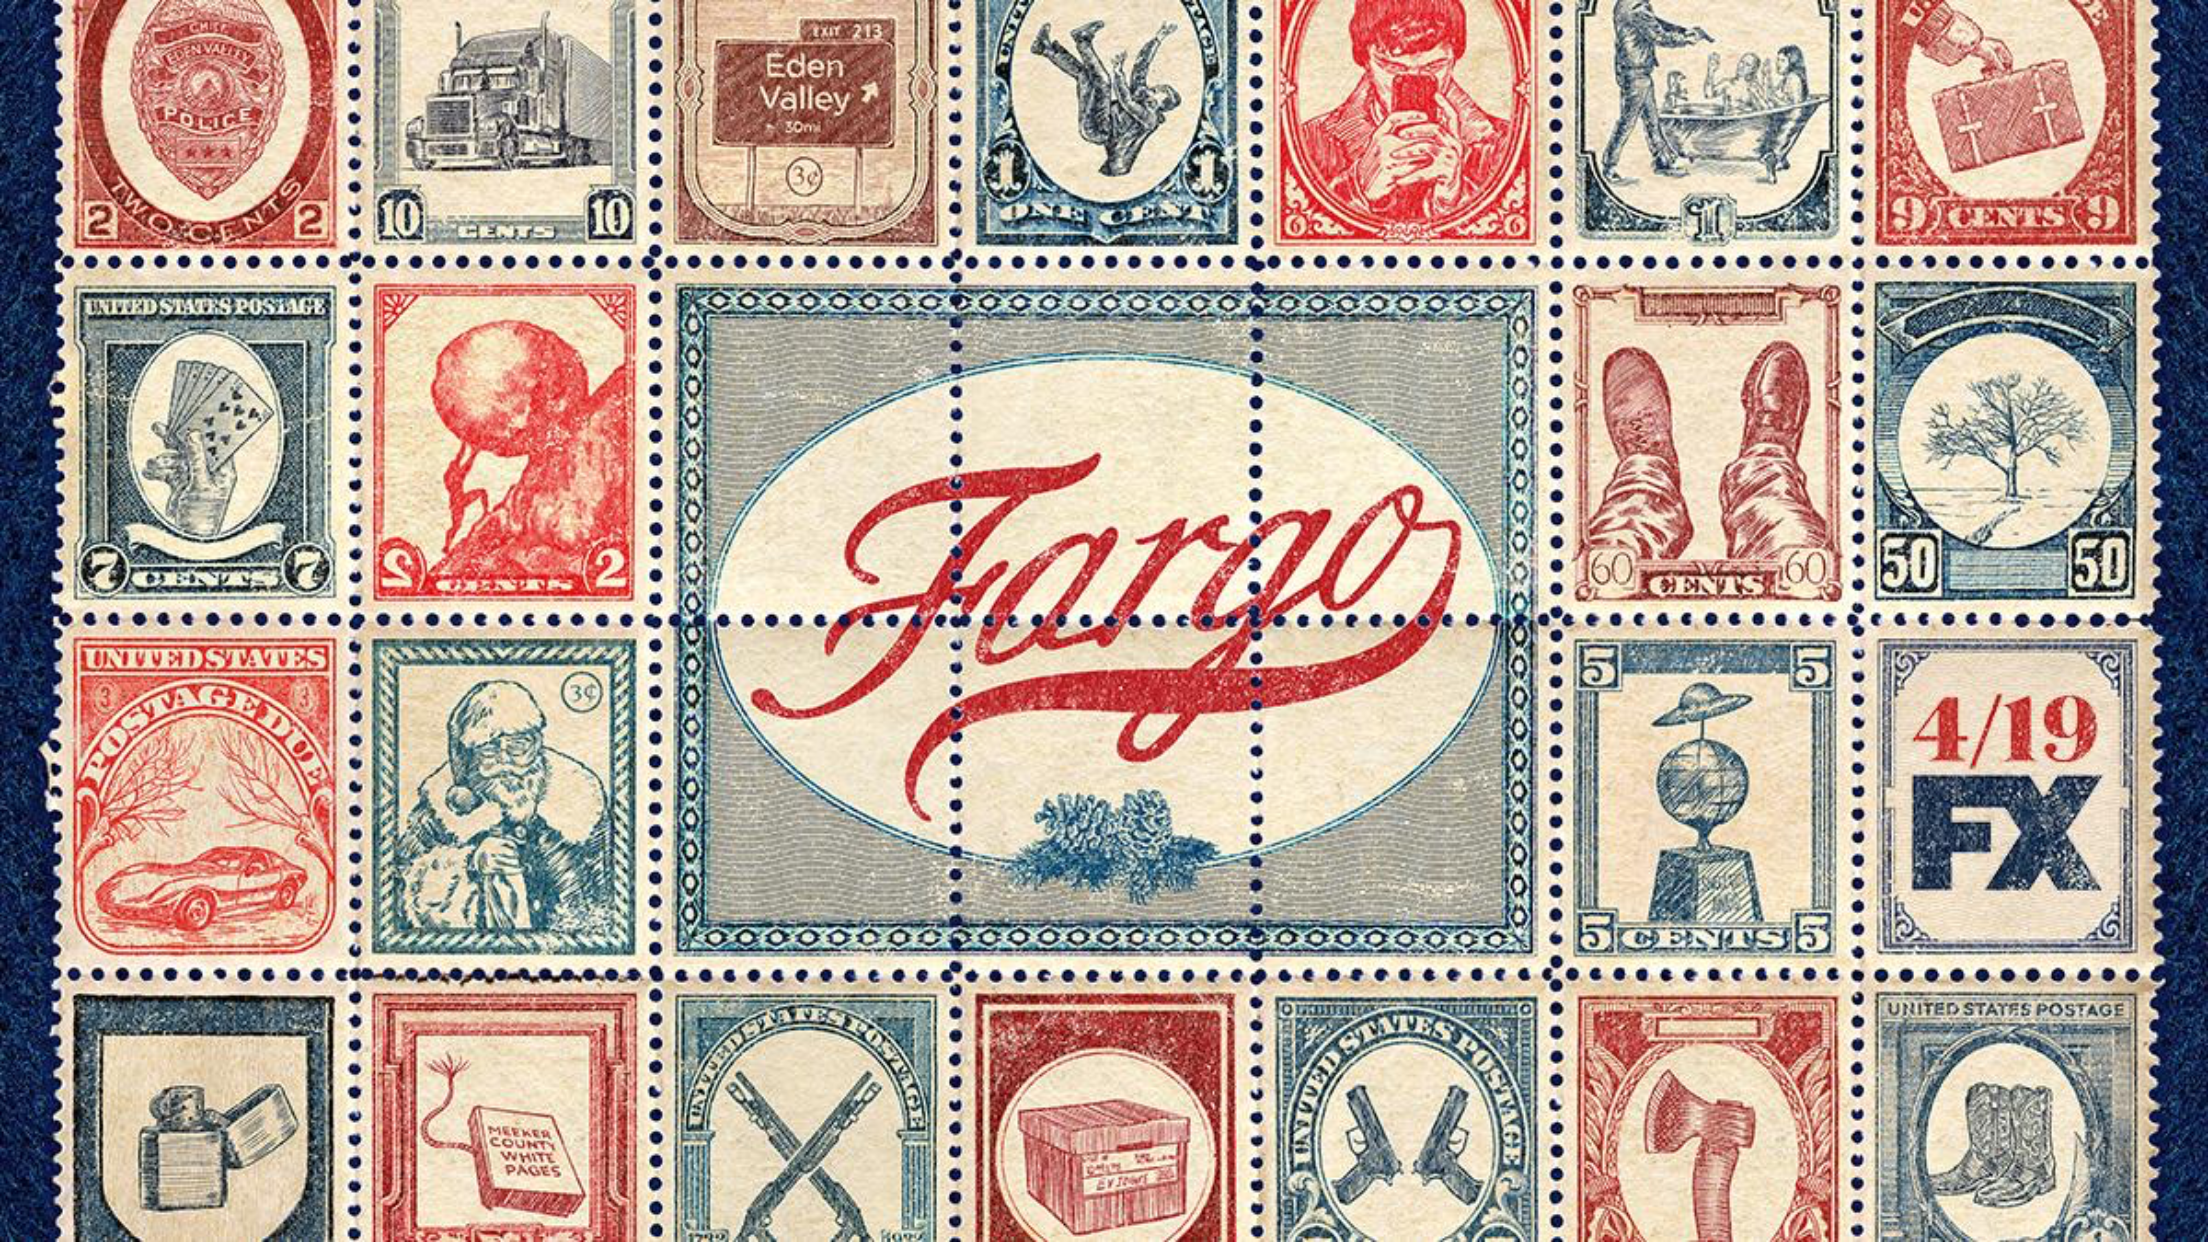 Pin by Davisco's Den on ⑤⓪ TV Shows Fargo (With images